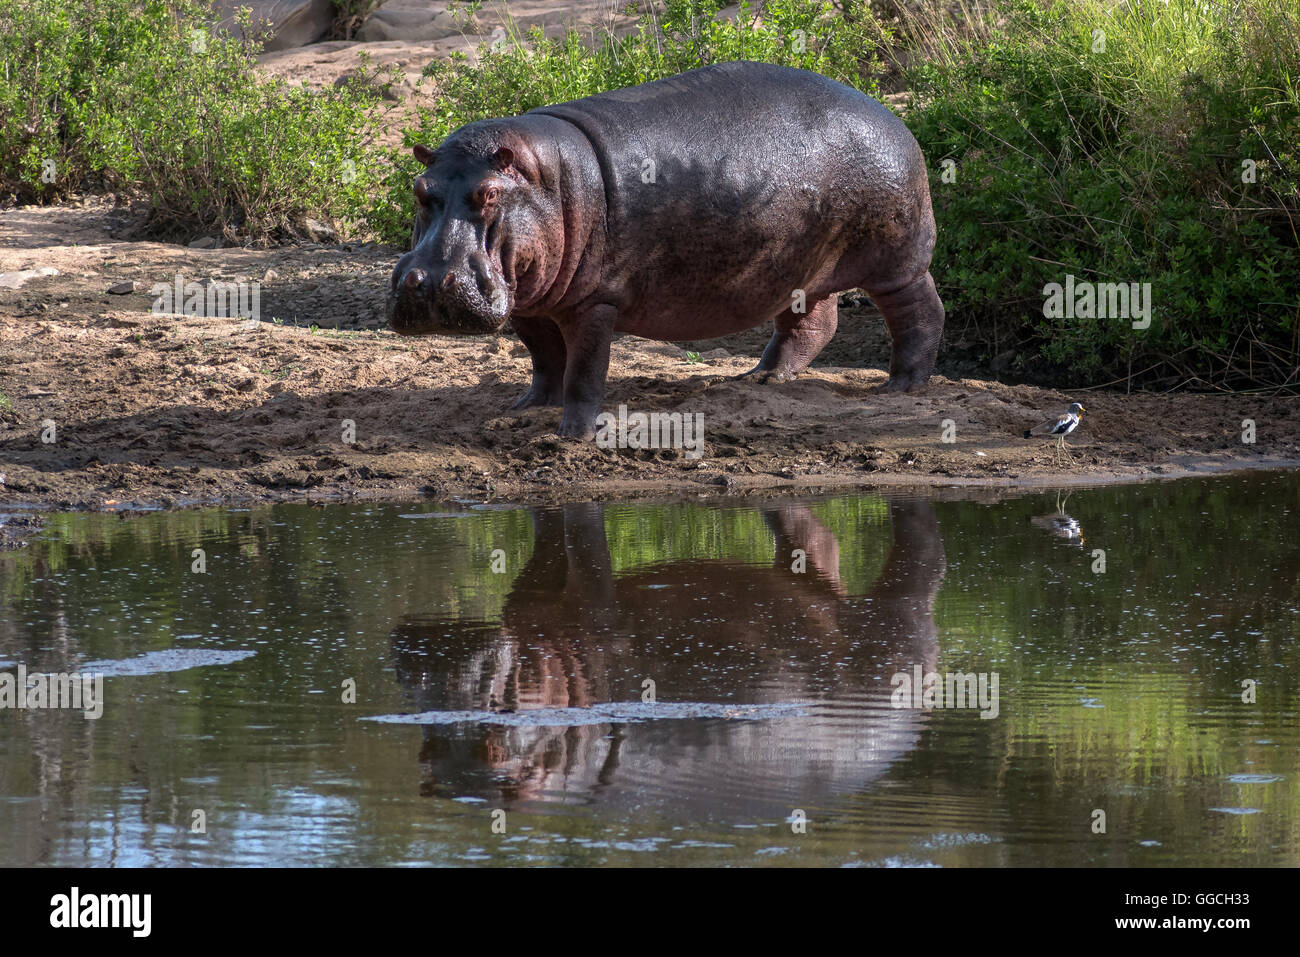 Hippo in the last pool in an otherwise dry river bed - Stock Image